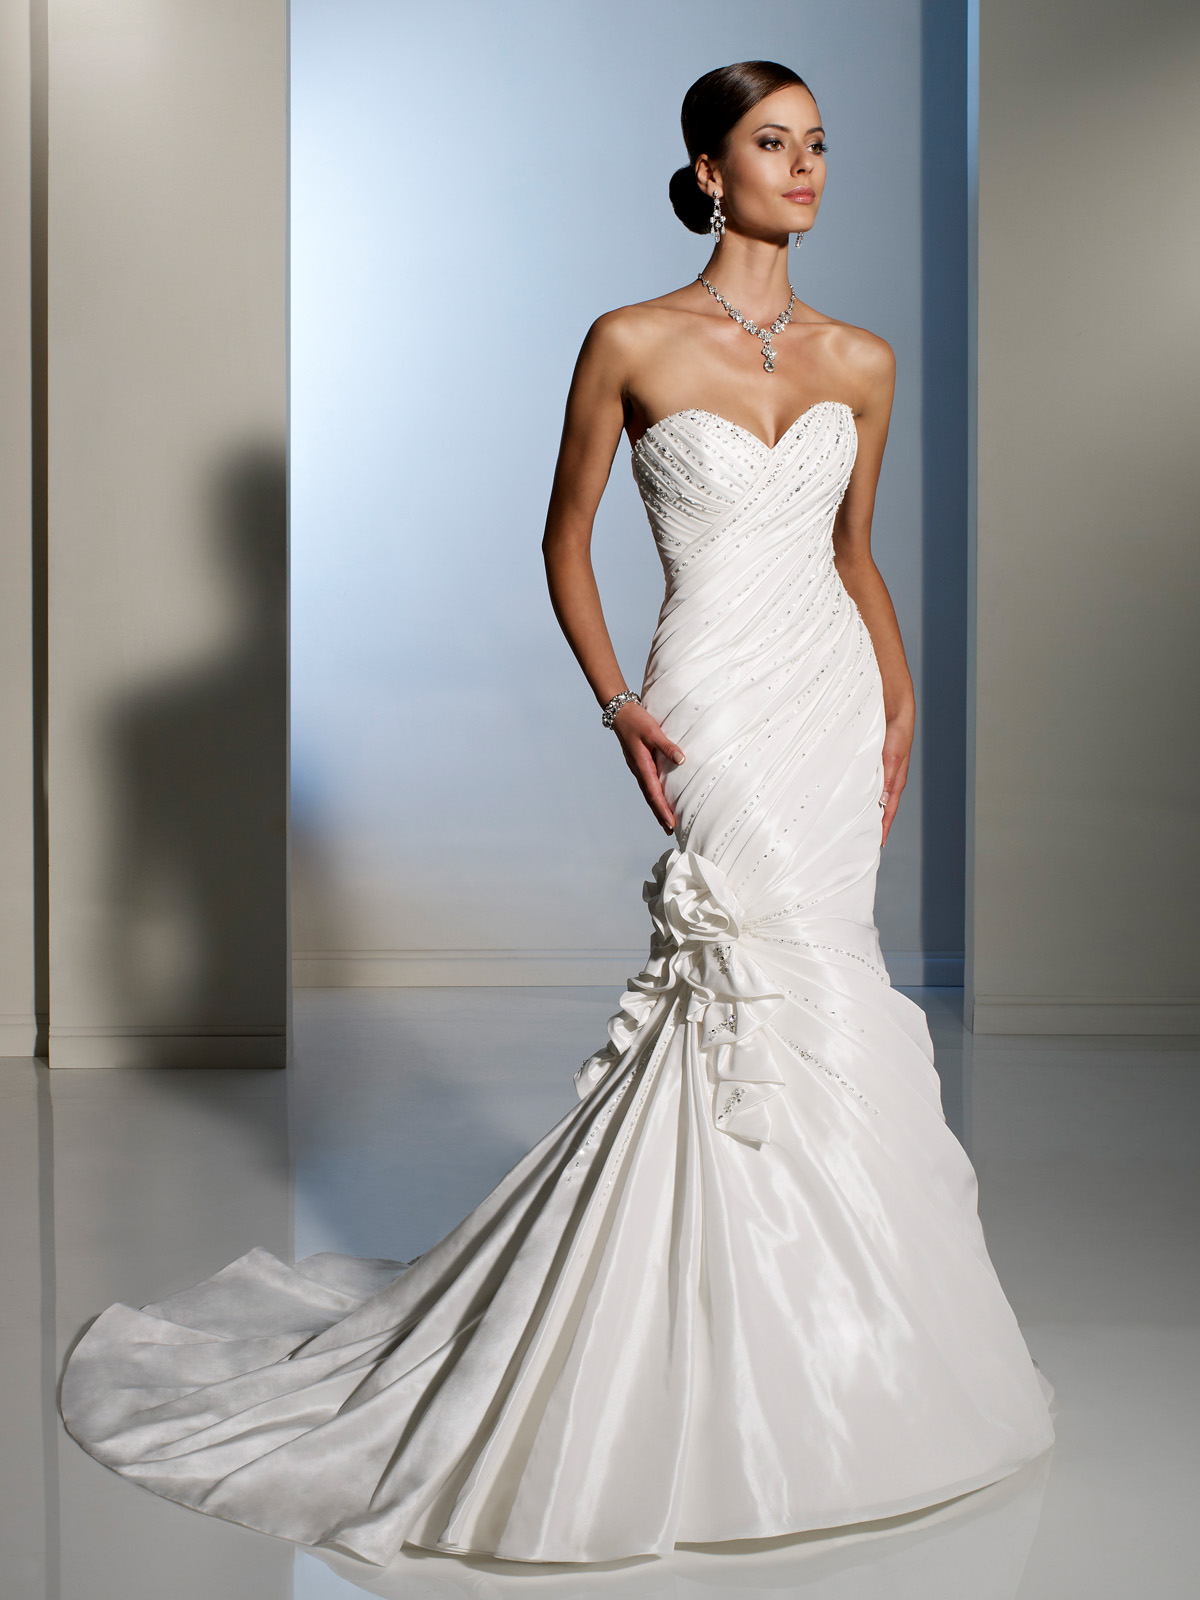 Wedding Gowns With Designs : West weddings splendid sophia a designer wedding gown event